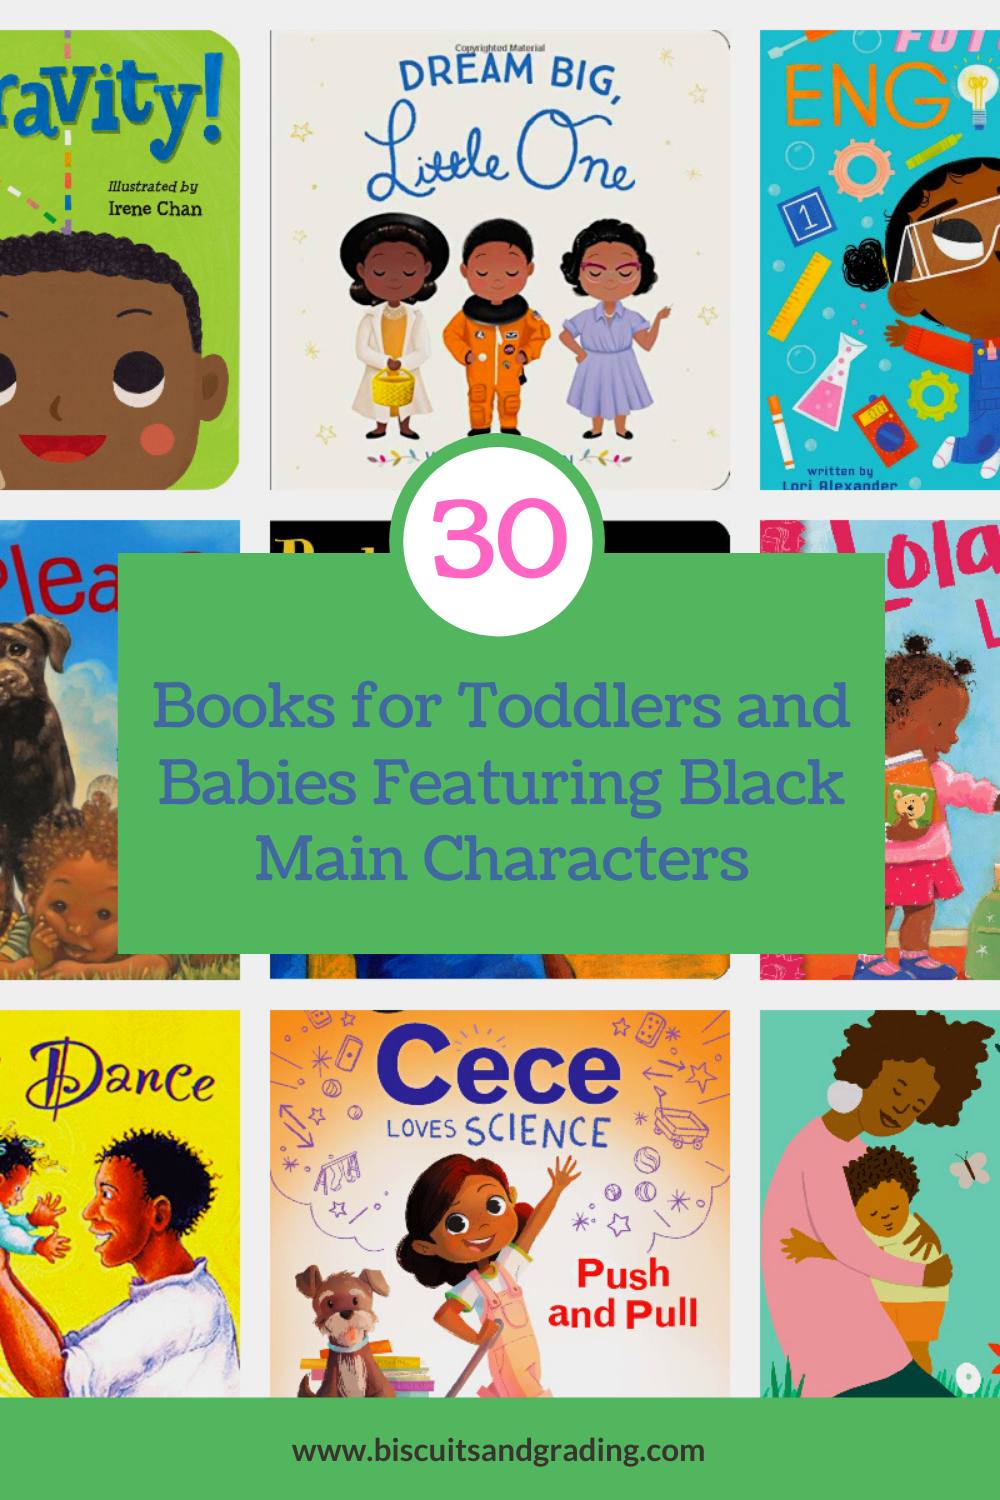 30 books for toddlers featuring black main characters